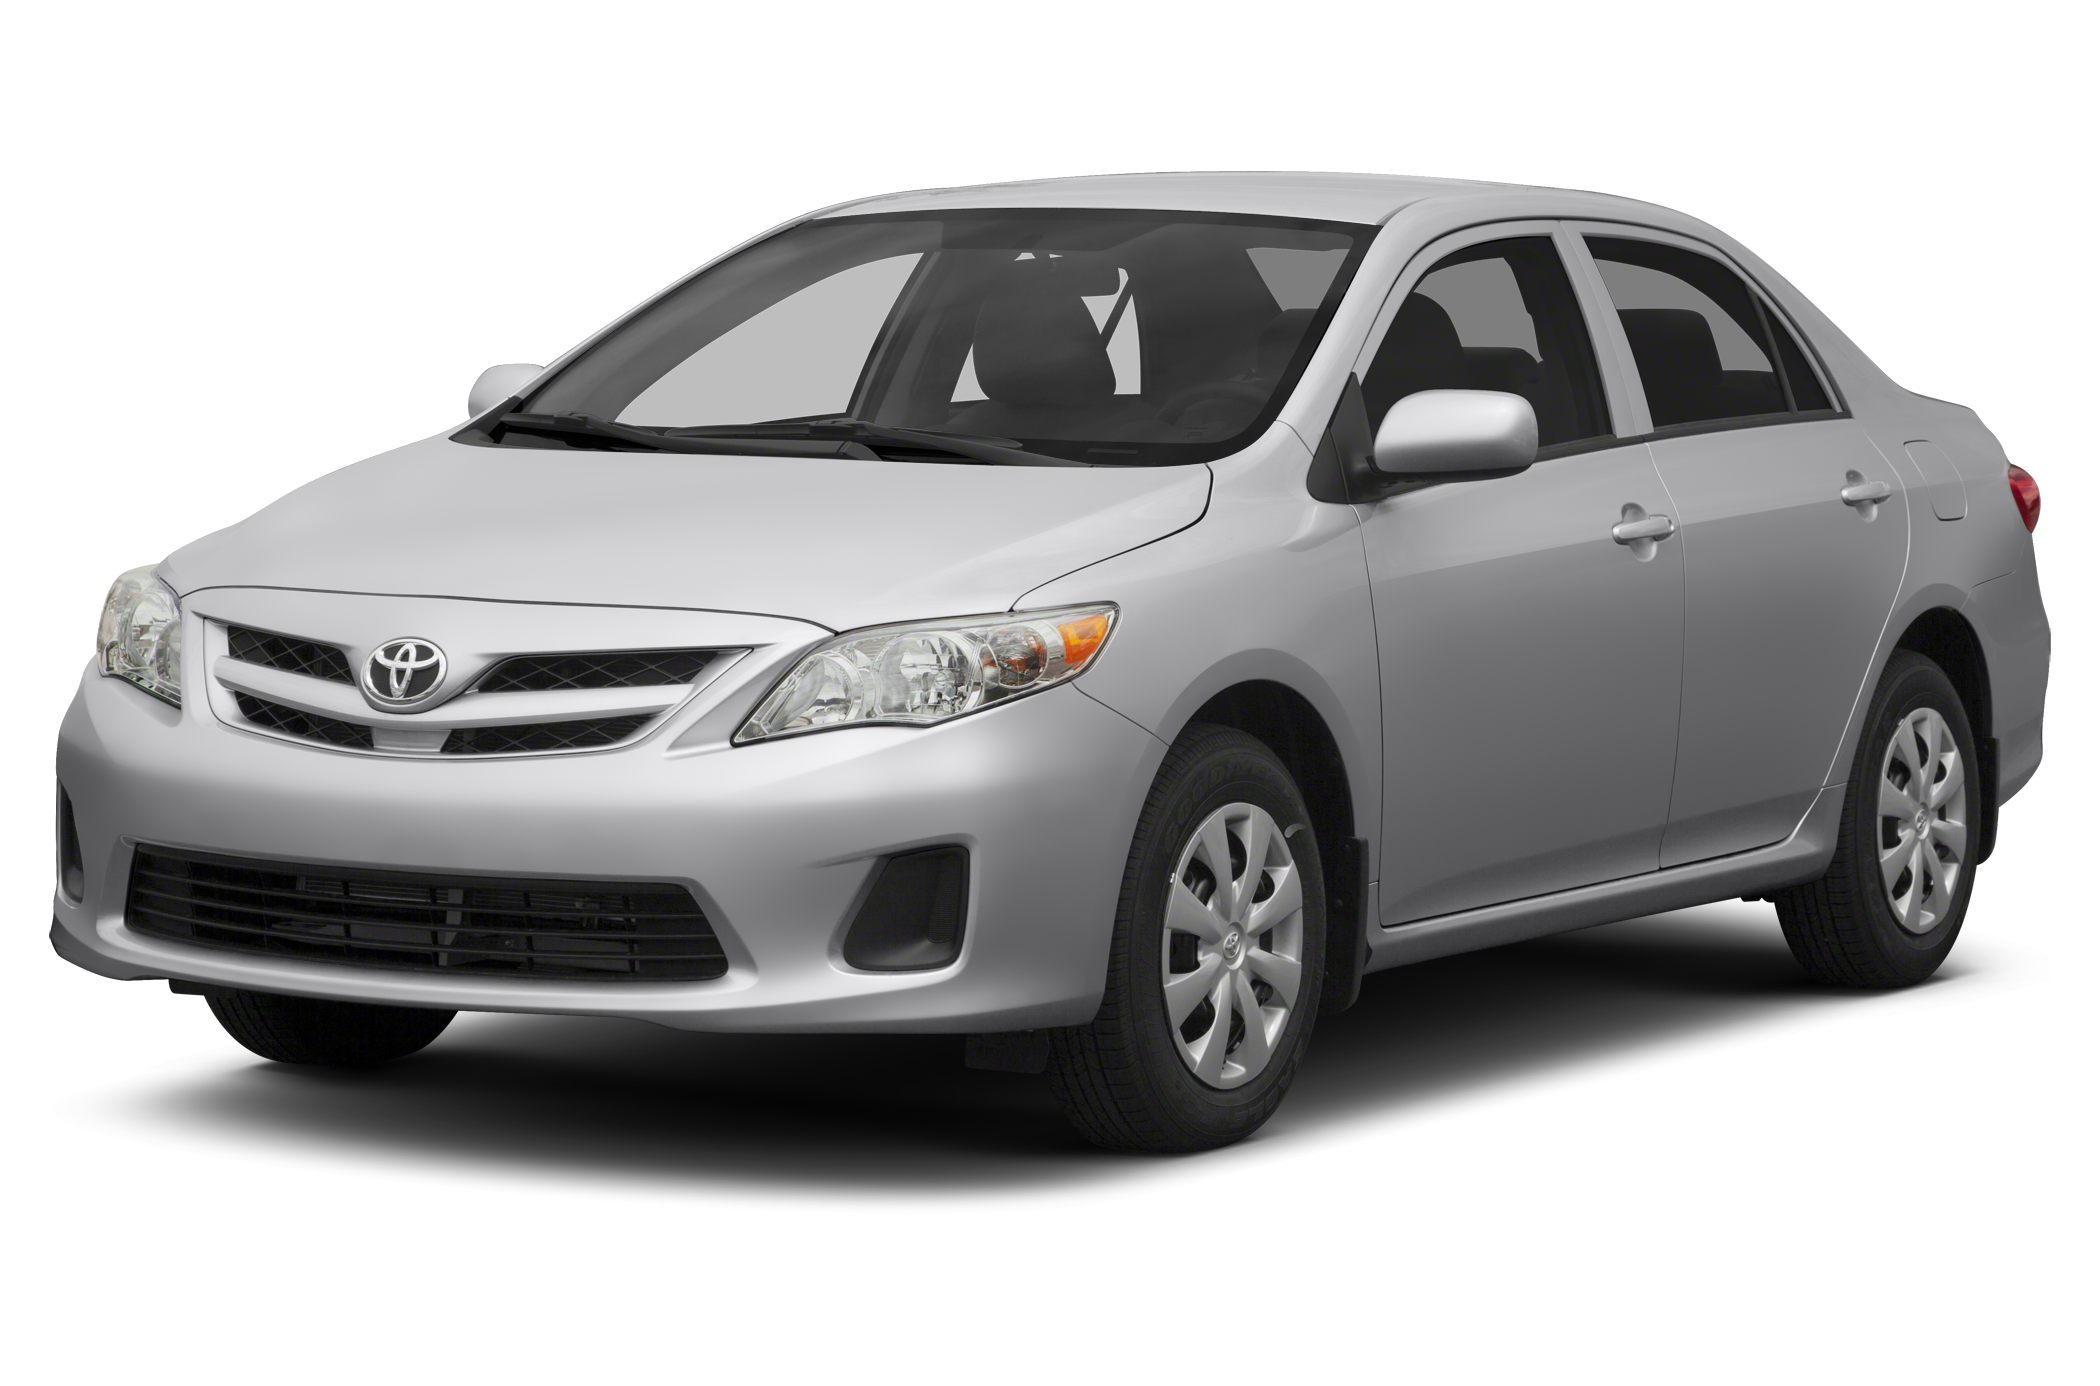 2013 Toyota Corolla L Sedan for sale in Gastonia for $15,350 with 20,802 miles.